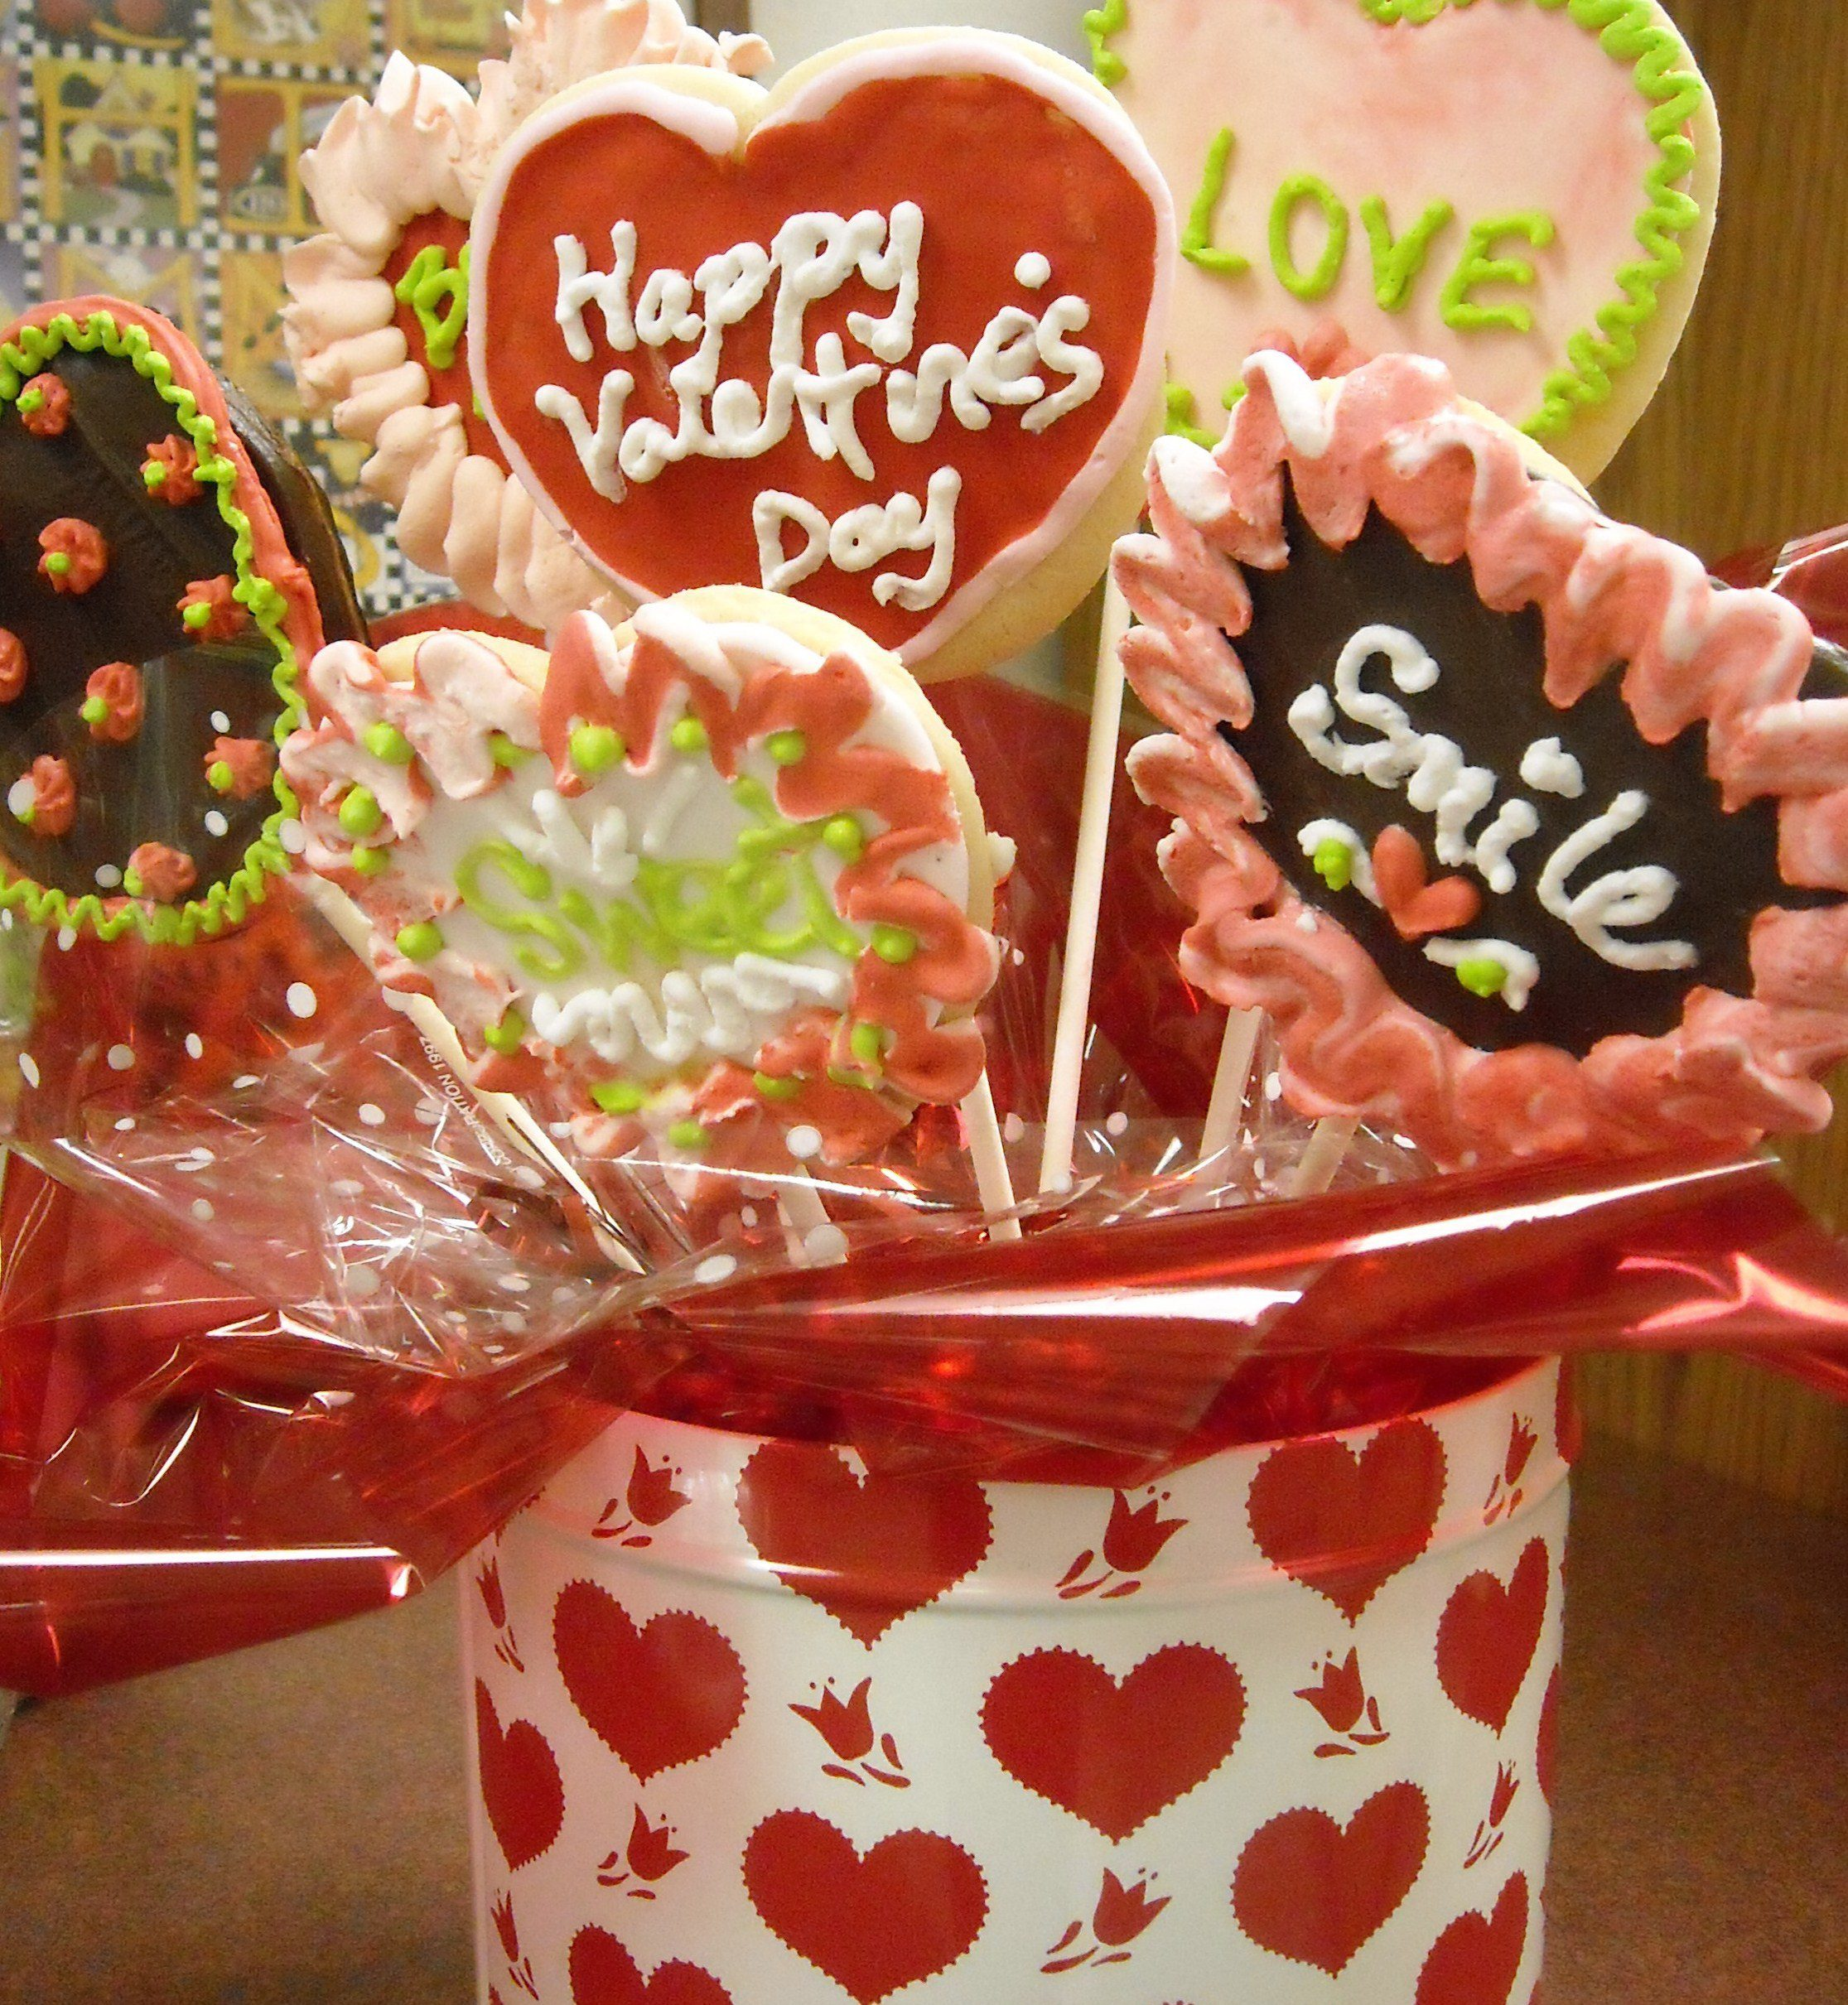 Valentine's Day treats. (Wikimedia Commons)